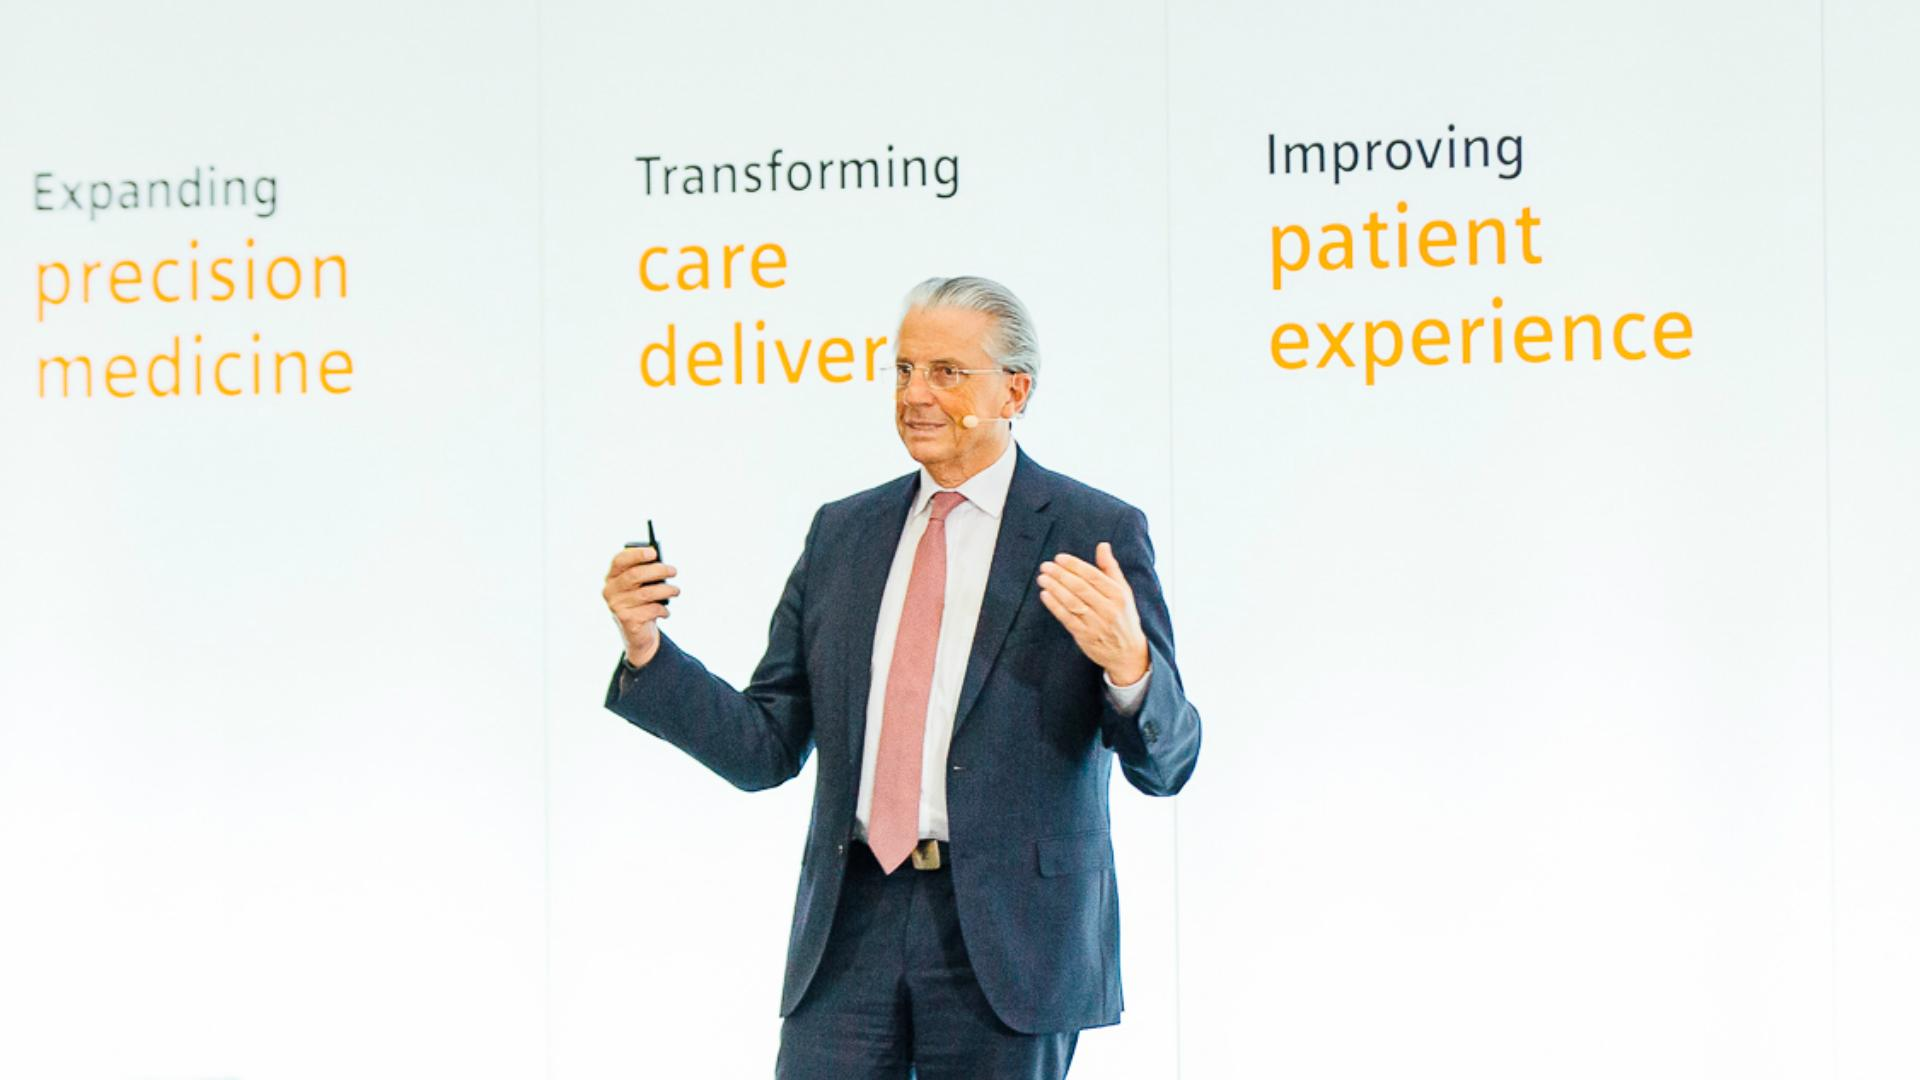 Prof. Dr. Jochen A Werner, CEO of Essen University Hospital, on the clinic's path to a Smart Hospital